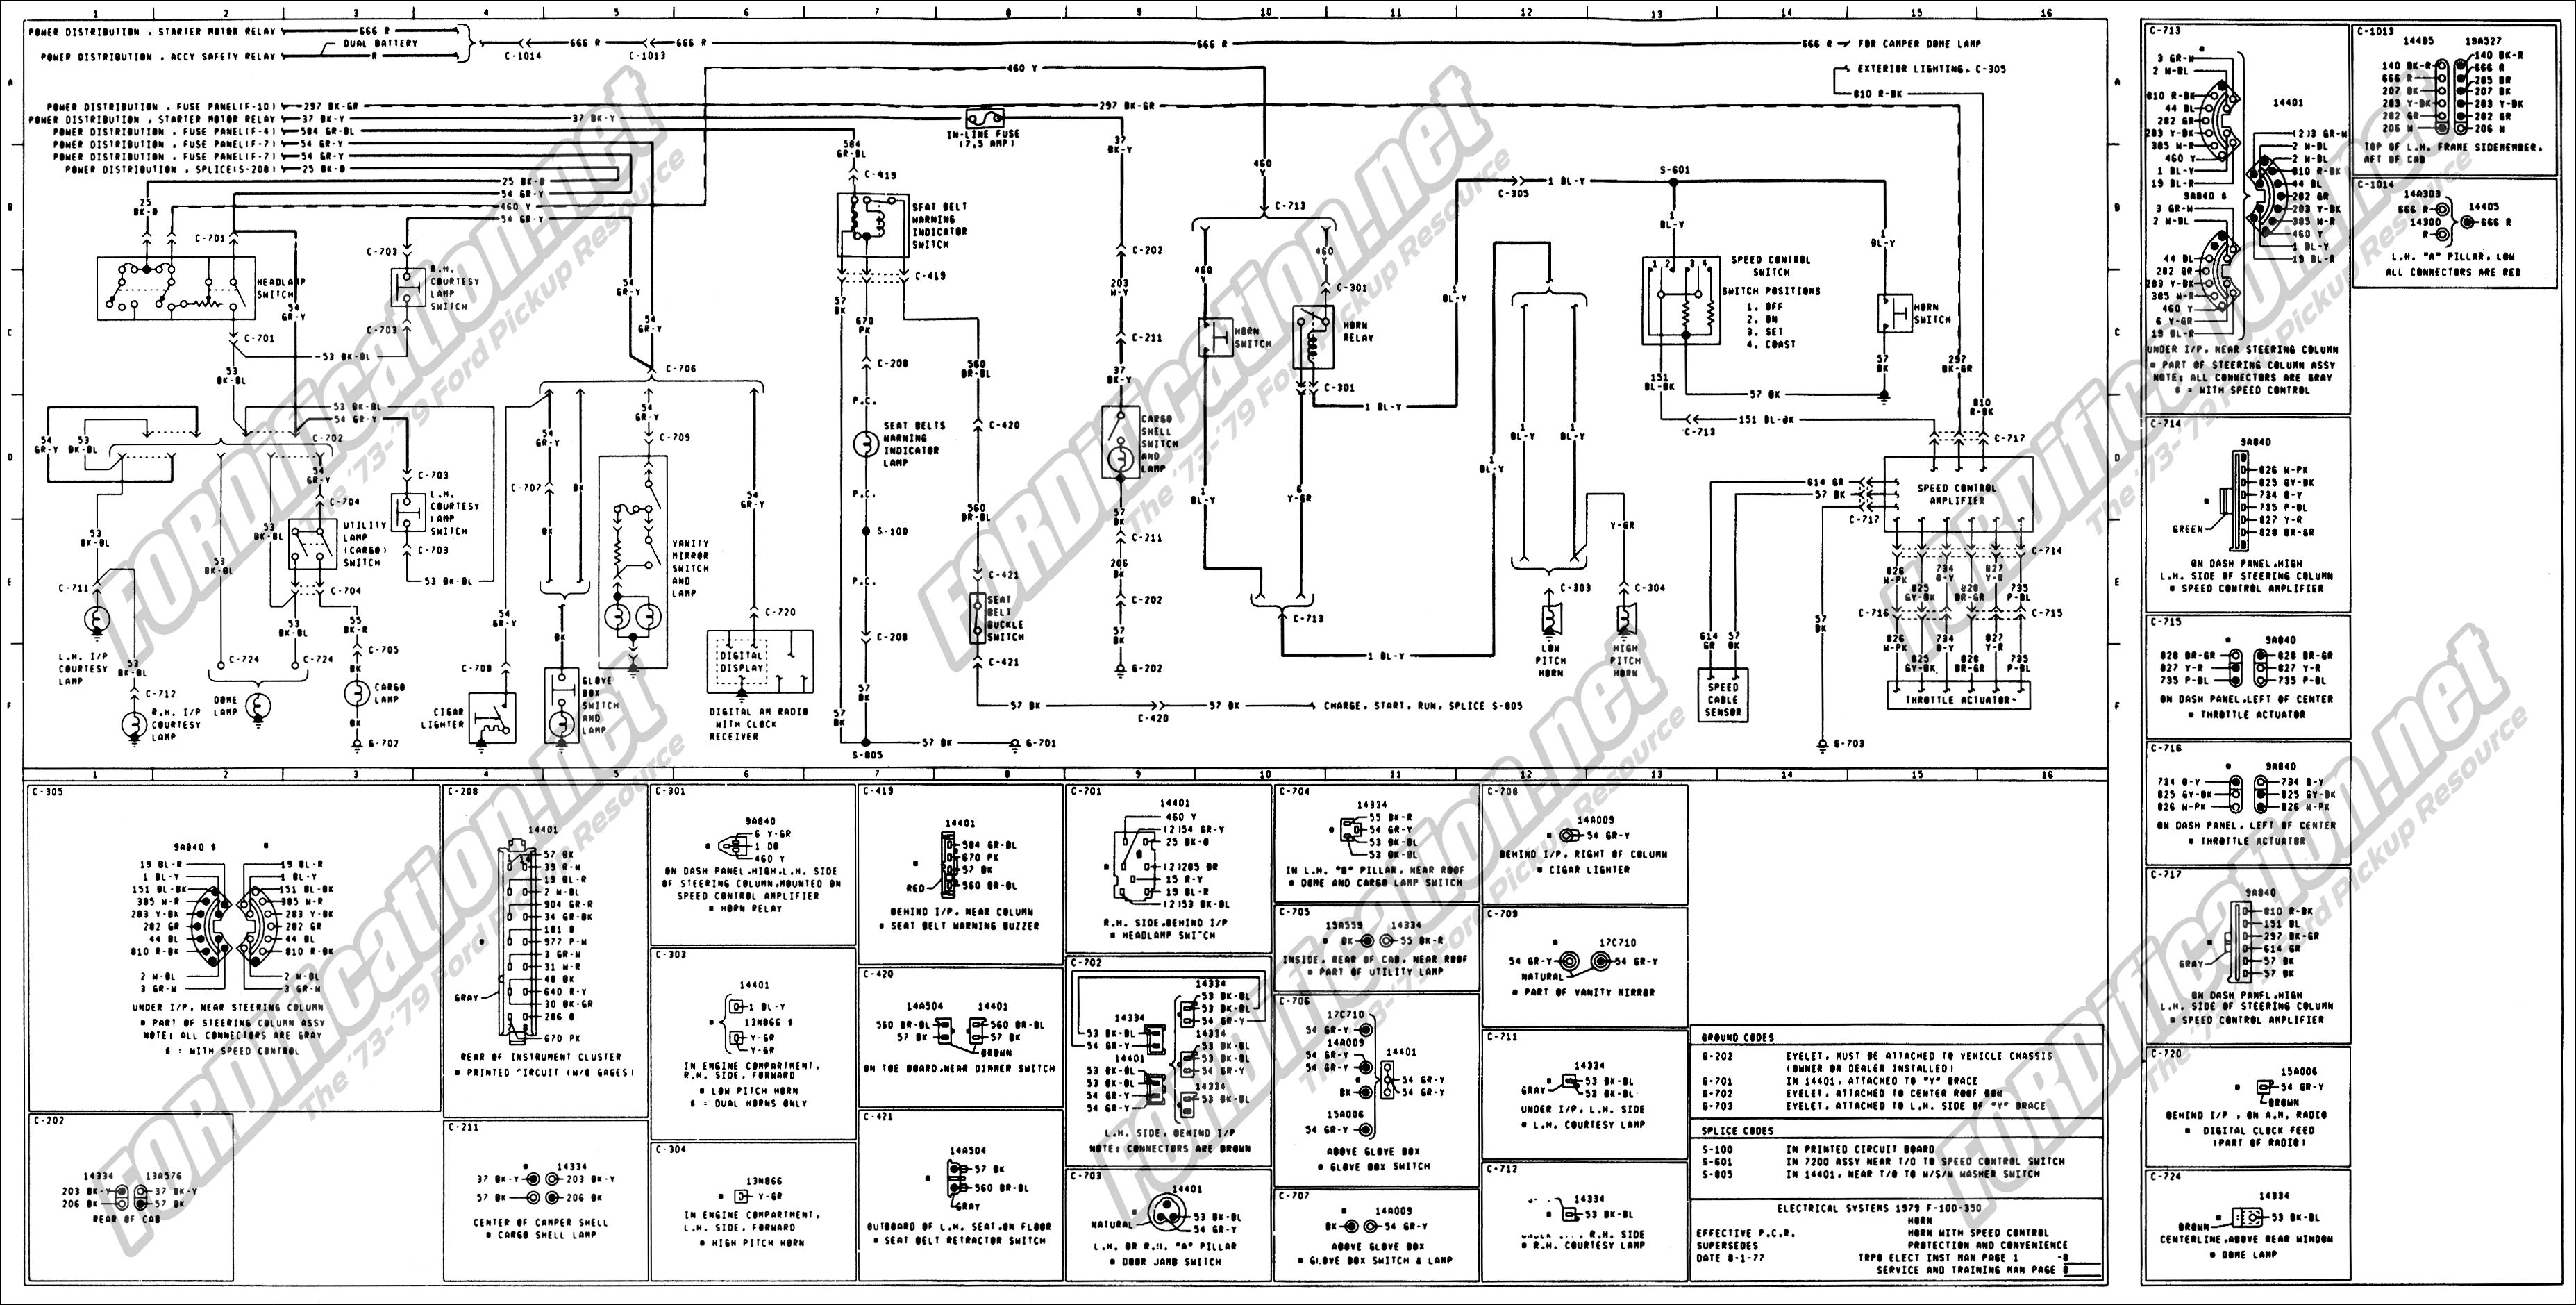 Discussion C799 ds449374 also 2q766 2003 Trailblazer Ext Taillights Instrument Panel further 2007 Equinox Stereo Wiring Diagram 24328 also 2003 Gmc Yukon Bose Radio Wiring Diagram Wiring Diagrams furthermore 2003 Chevy Silverado 1500 Stereo Wiring Diagram Wiring. on 2005 silverado speaker wiring diagram